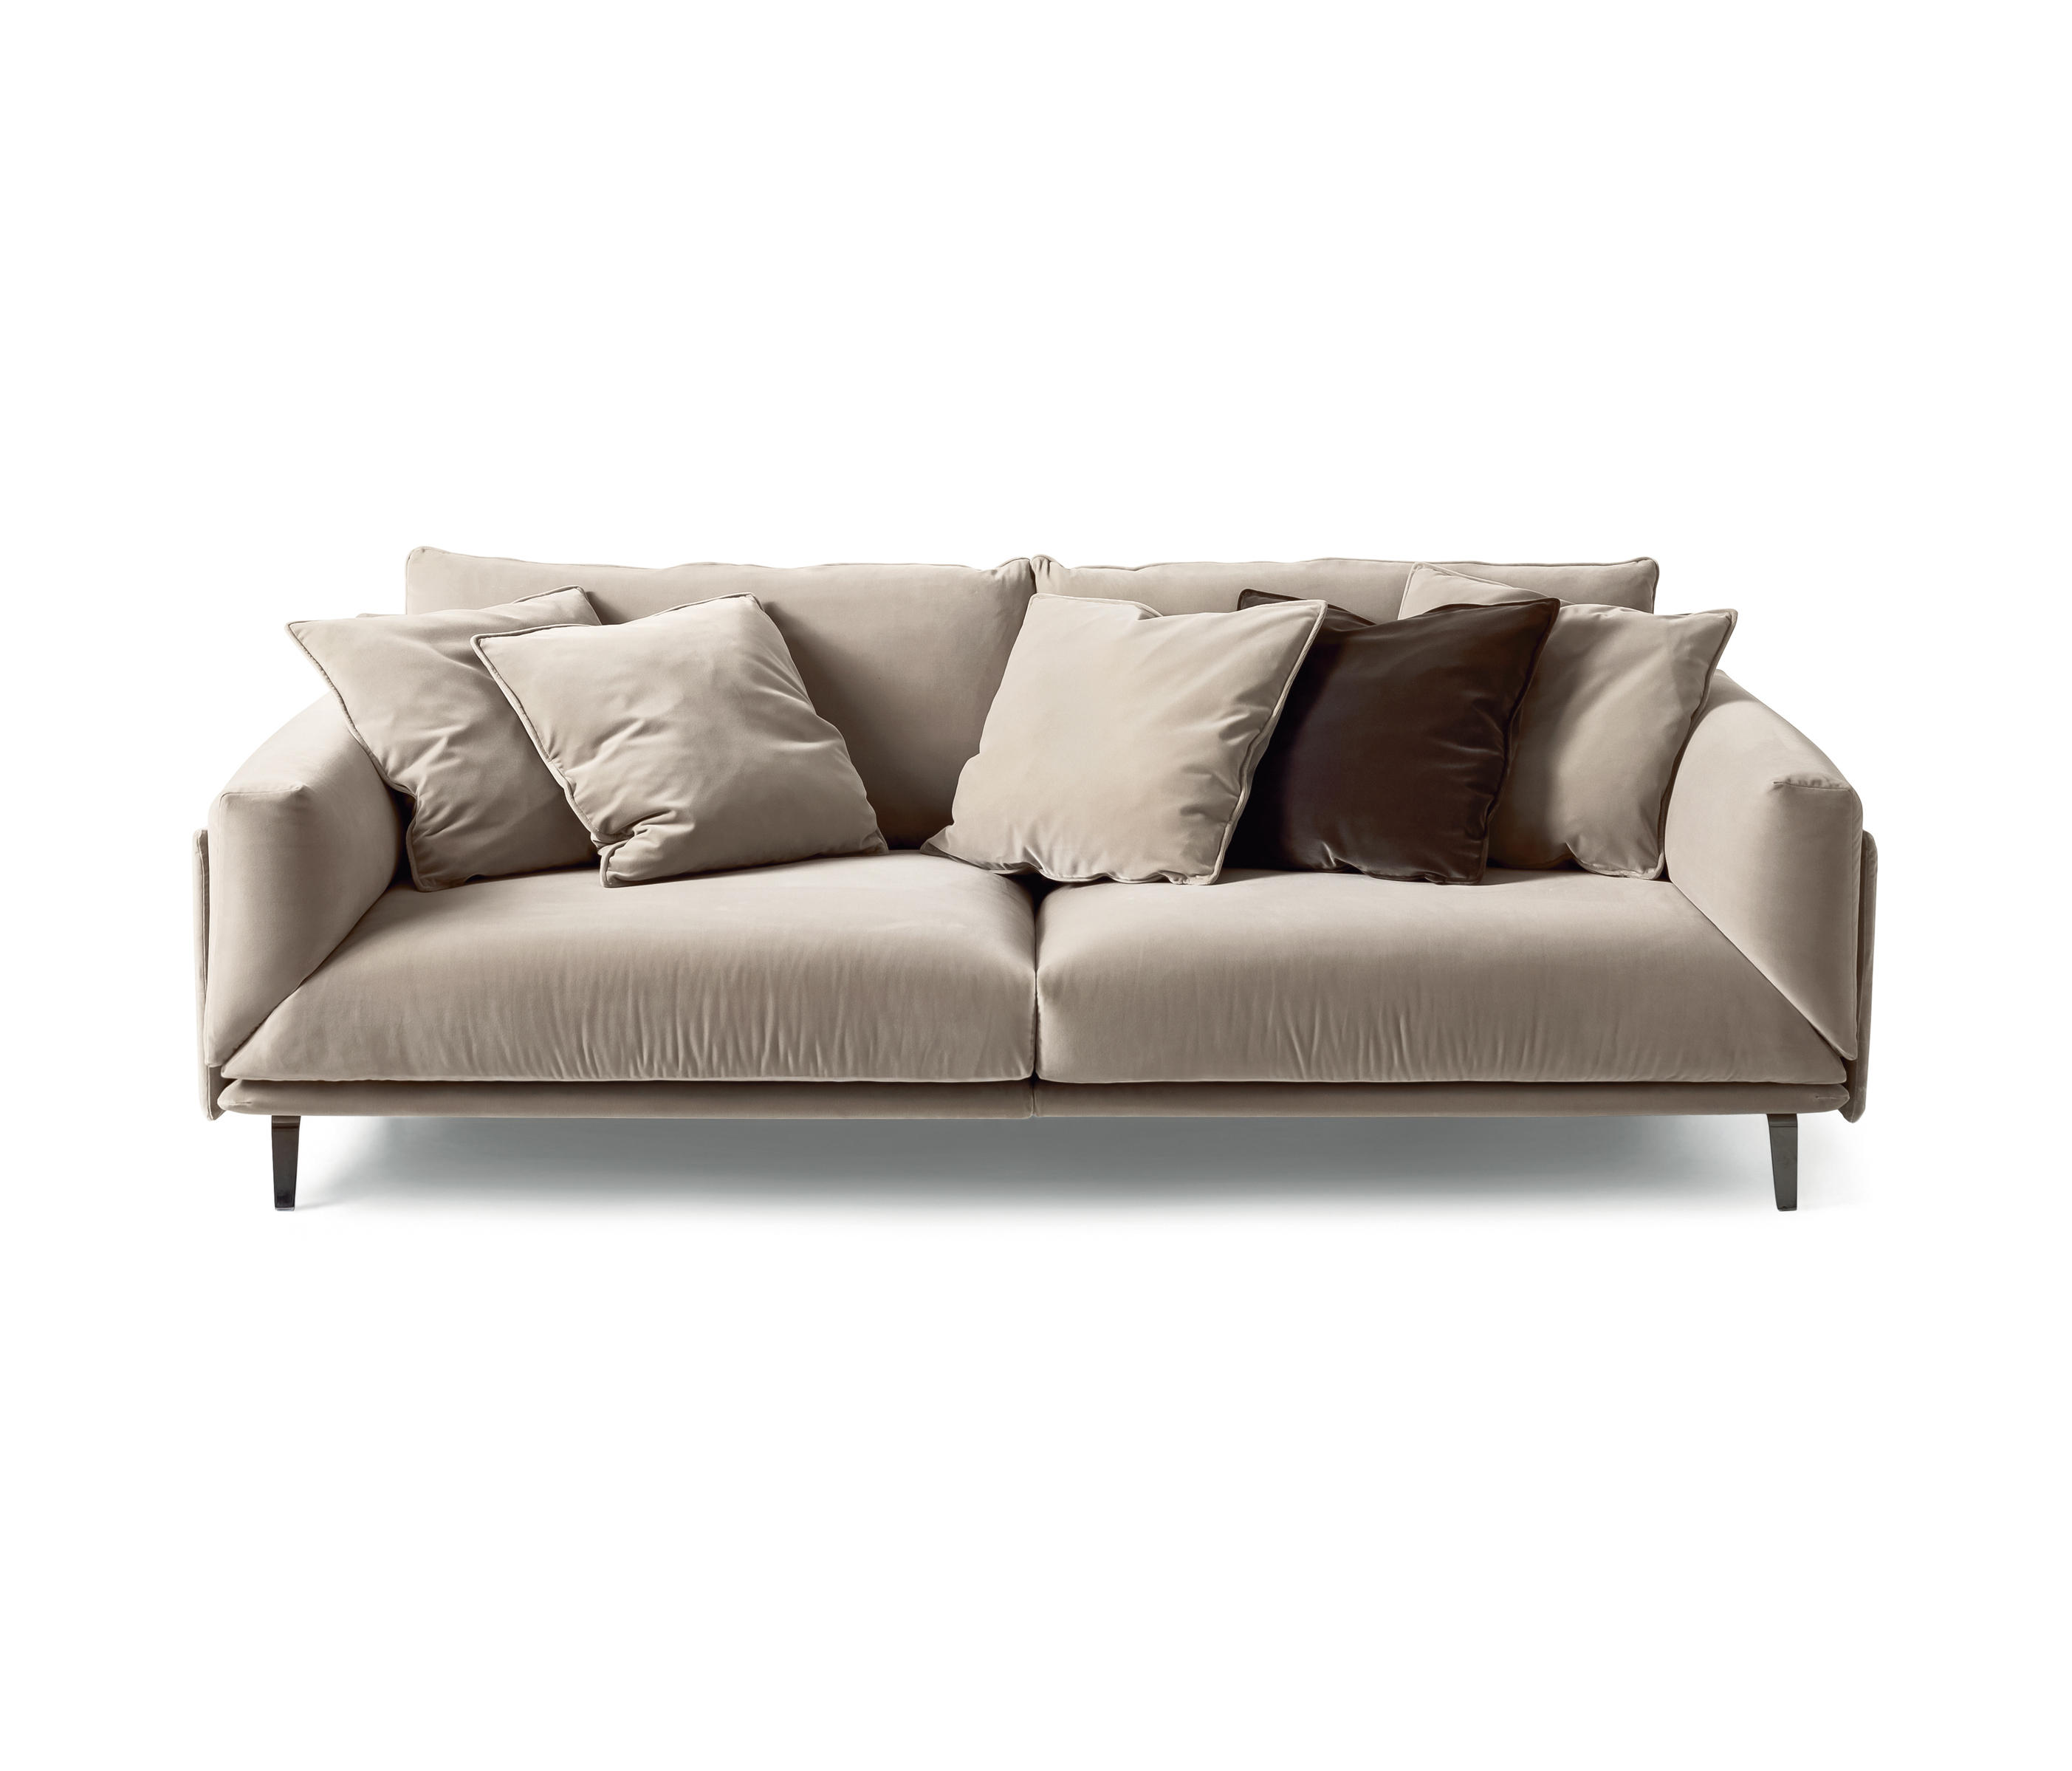 FAUBOURG SOFA Lounge sofas from ARFLEX